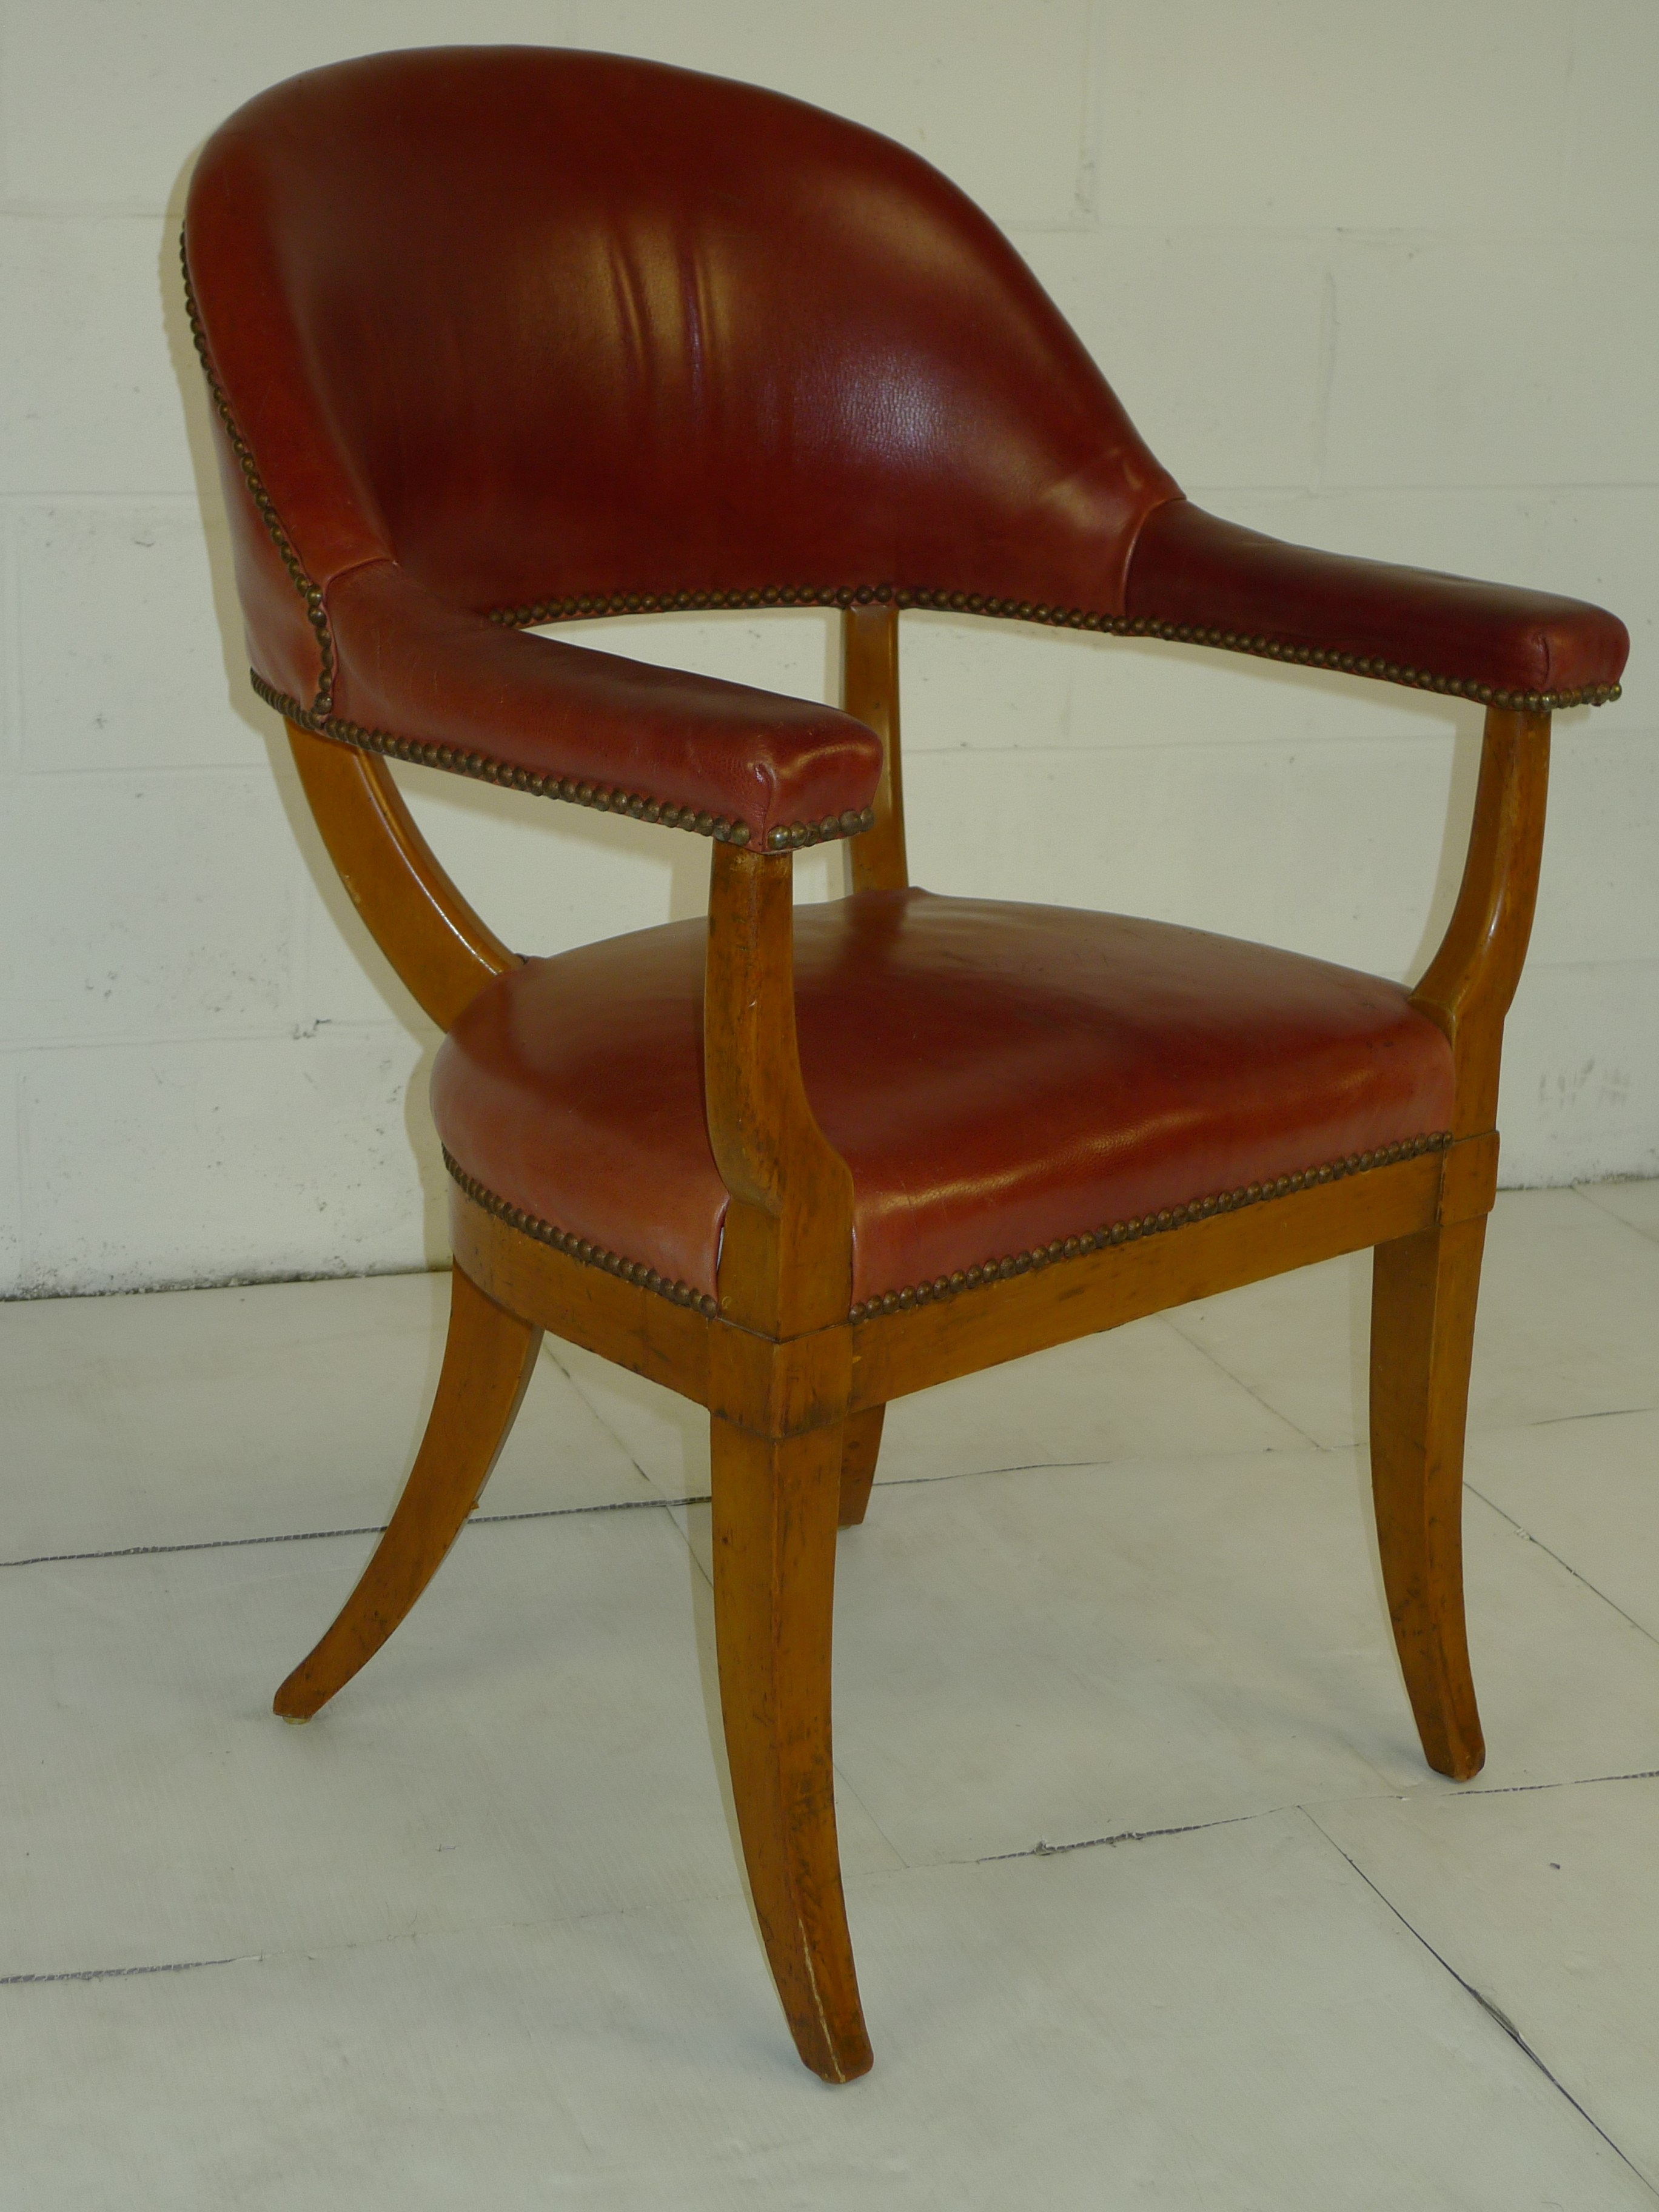 Modern Red Chair Mid Century Modern Red Leather Arm Rest Chair 500 00